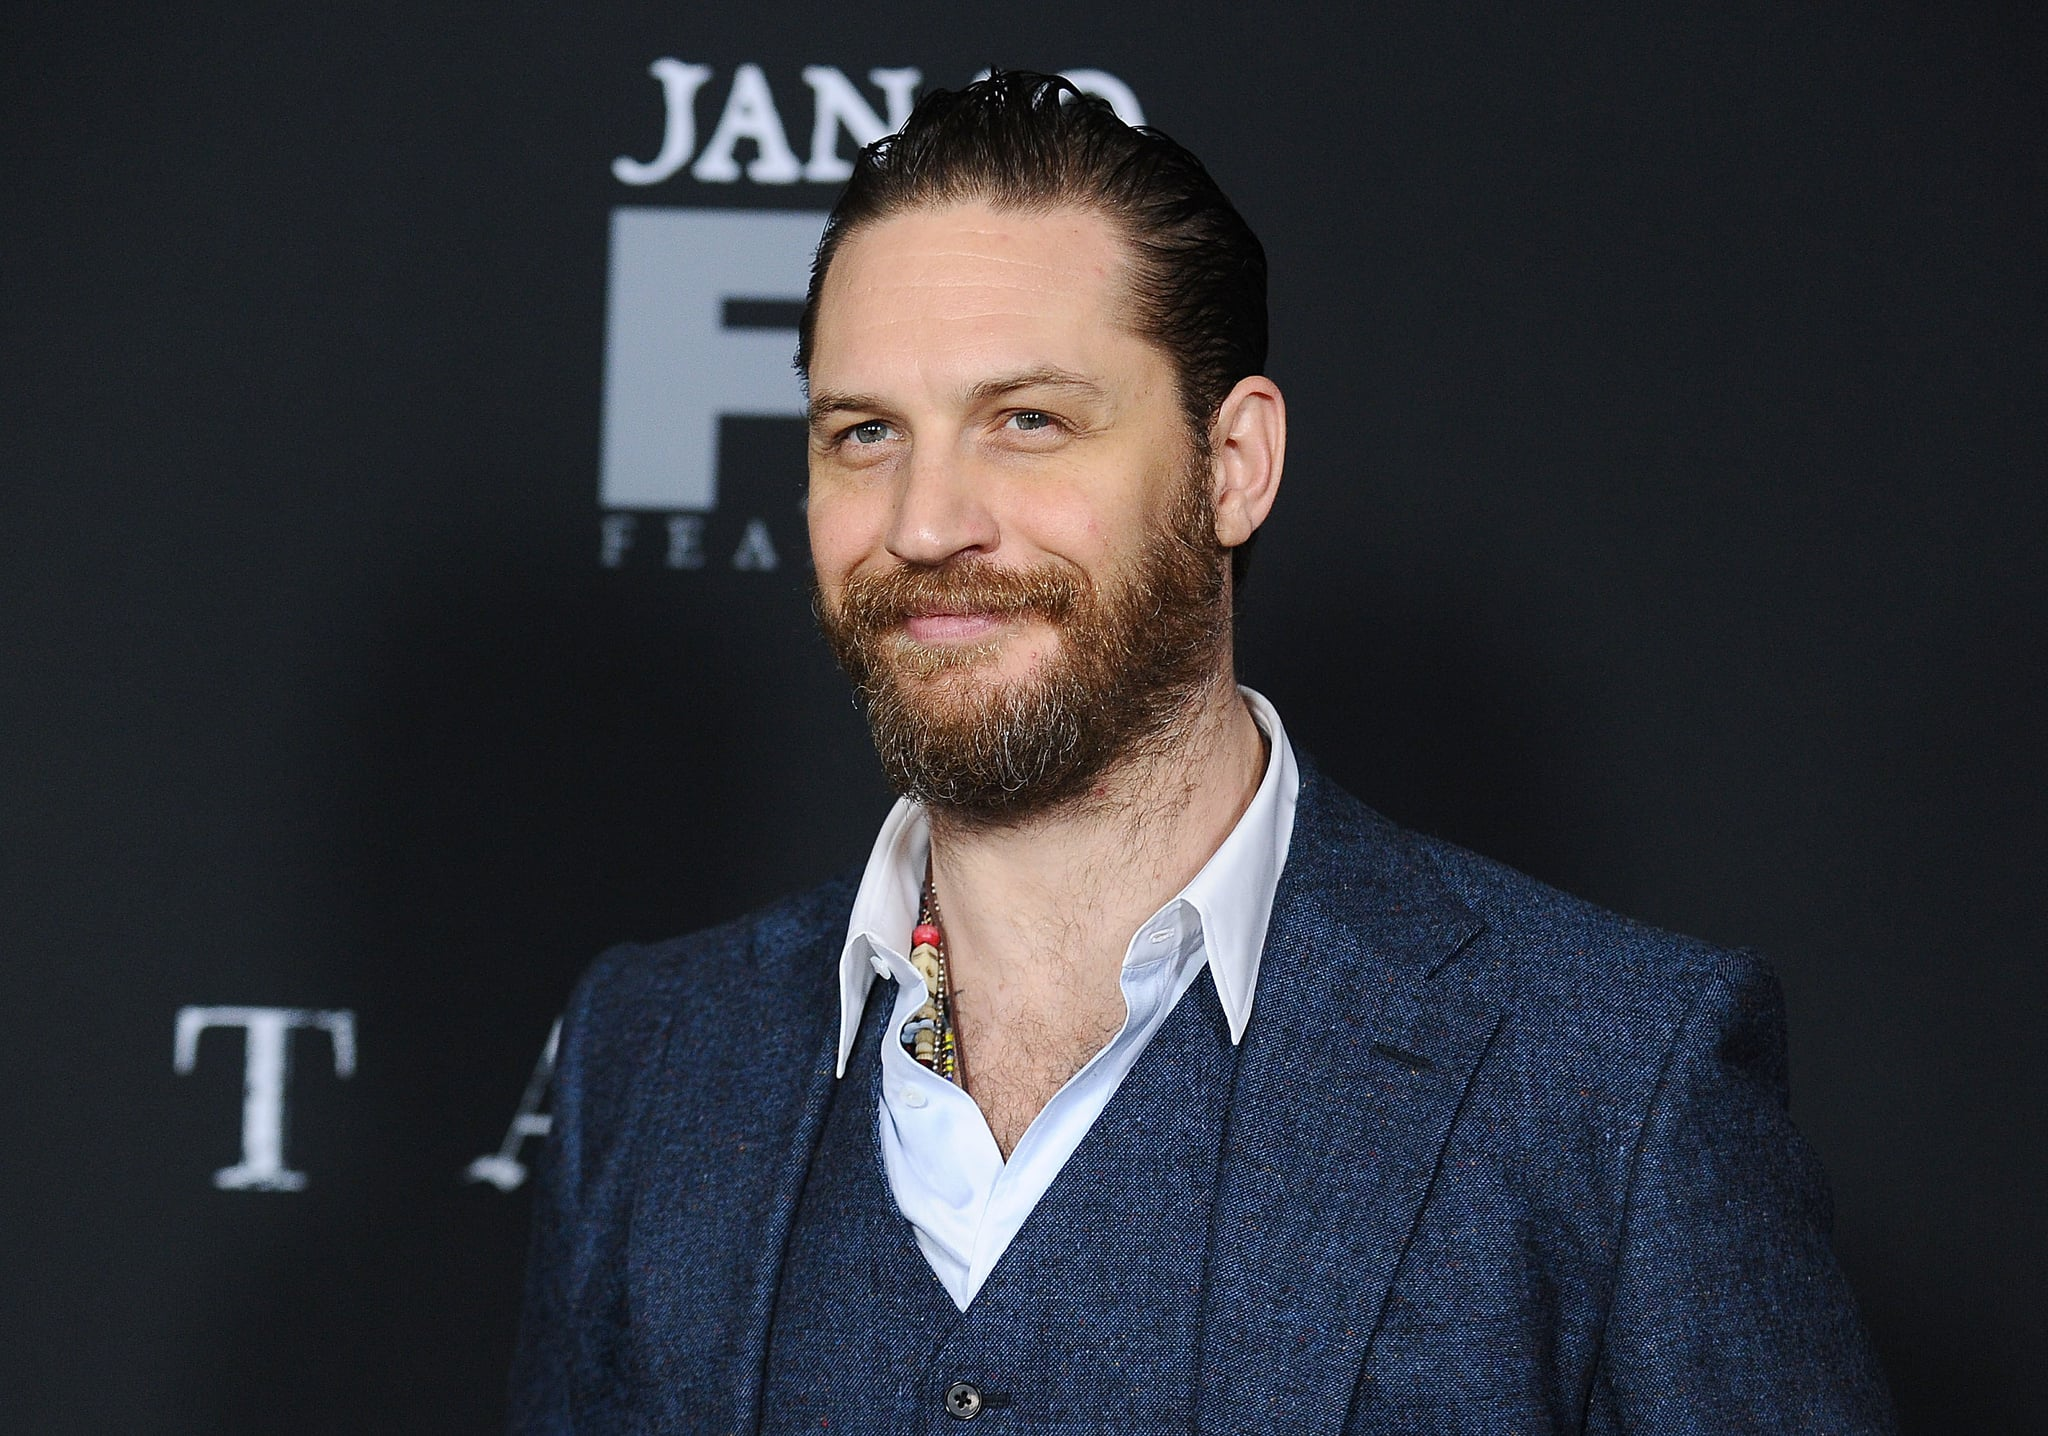 LOS ANGELES, CA - JANUARY 09:  Actor Tom Hardy attends the premiere of